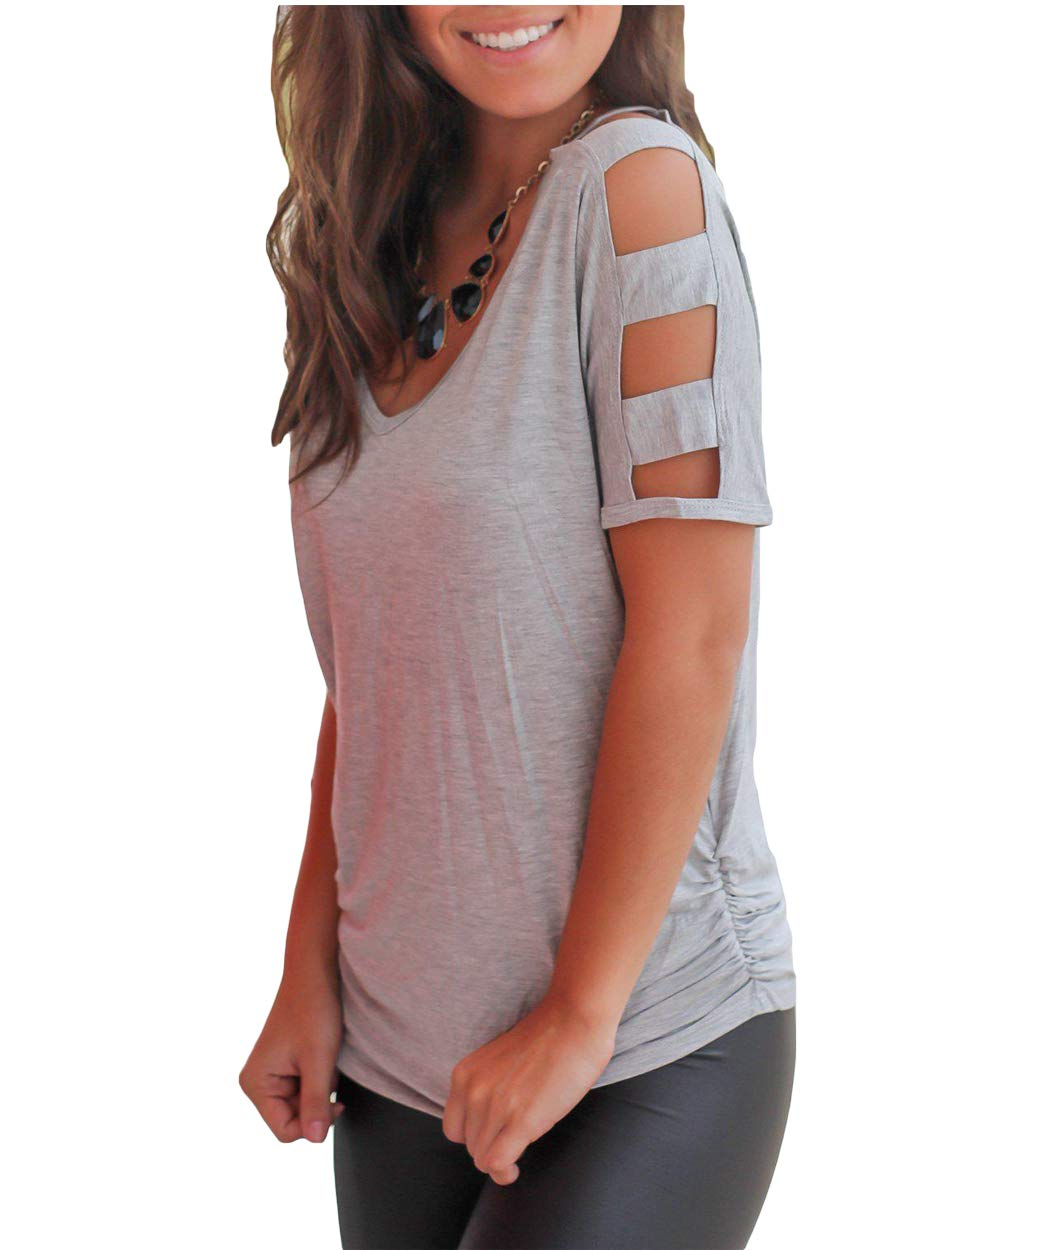 Eanklosco Womens Summer Short/Long Sleeve Cold Shoulder T Shirts Cut Out Tops V Neck Tunic Blouses (Gray, L)